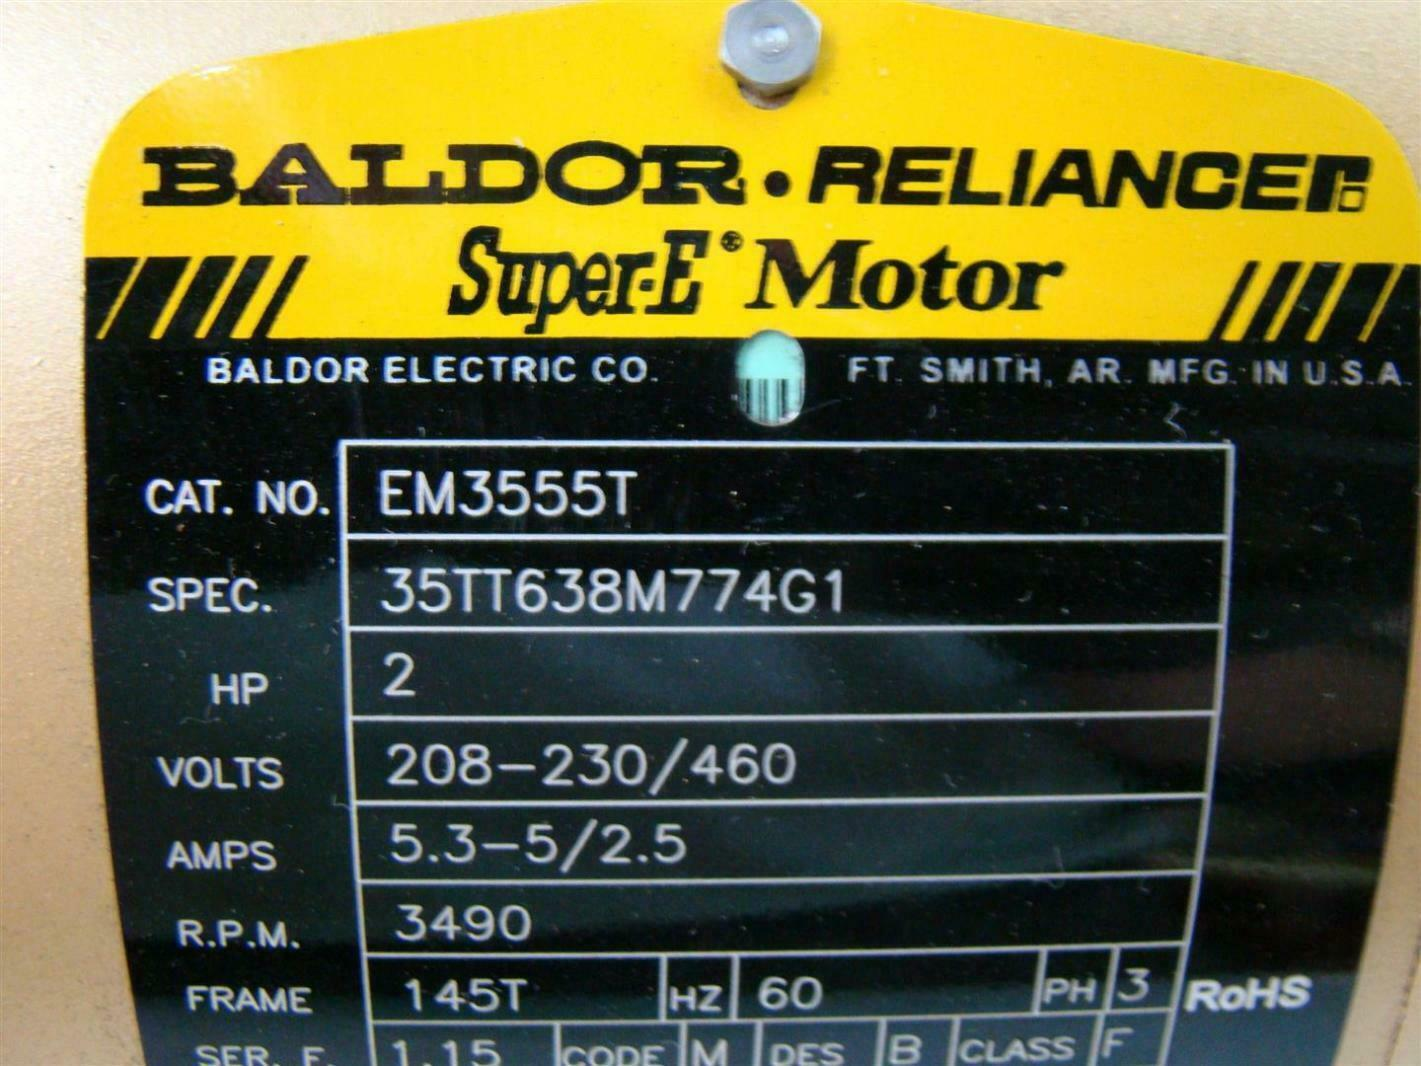 agh169 baldor reliance super e motor 2hp 208 230 460v 53 5 25amps 3490rpm 3ph em3555t 7 baldor reliance super e motor 2hp 208 230 460v 5 3 5 2 5amps baldor reliance motor wiring diagram at virtualis.co